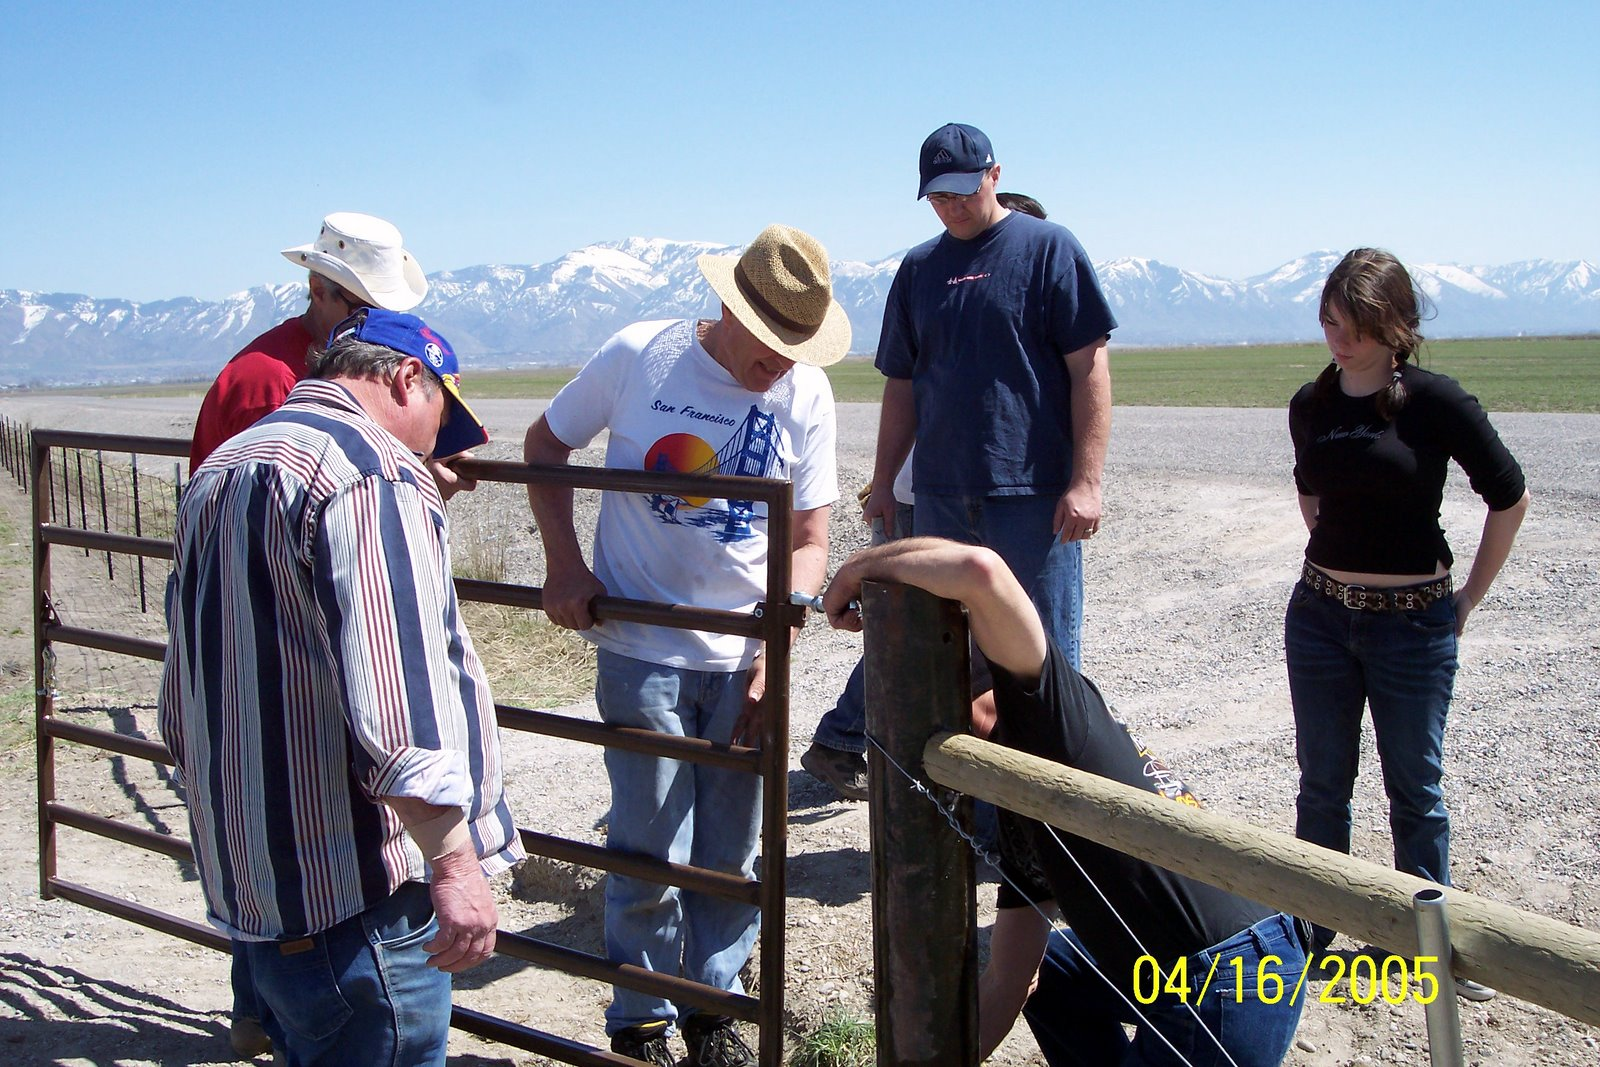 ATTACHING 8 FOOT GATE . IT WAS LATER REPLACED BY A 12 FOOTER.